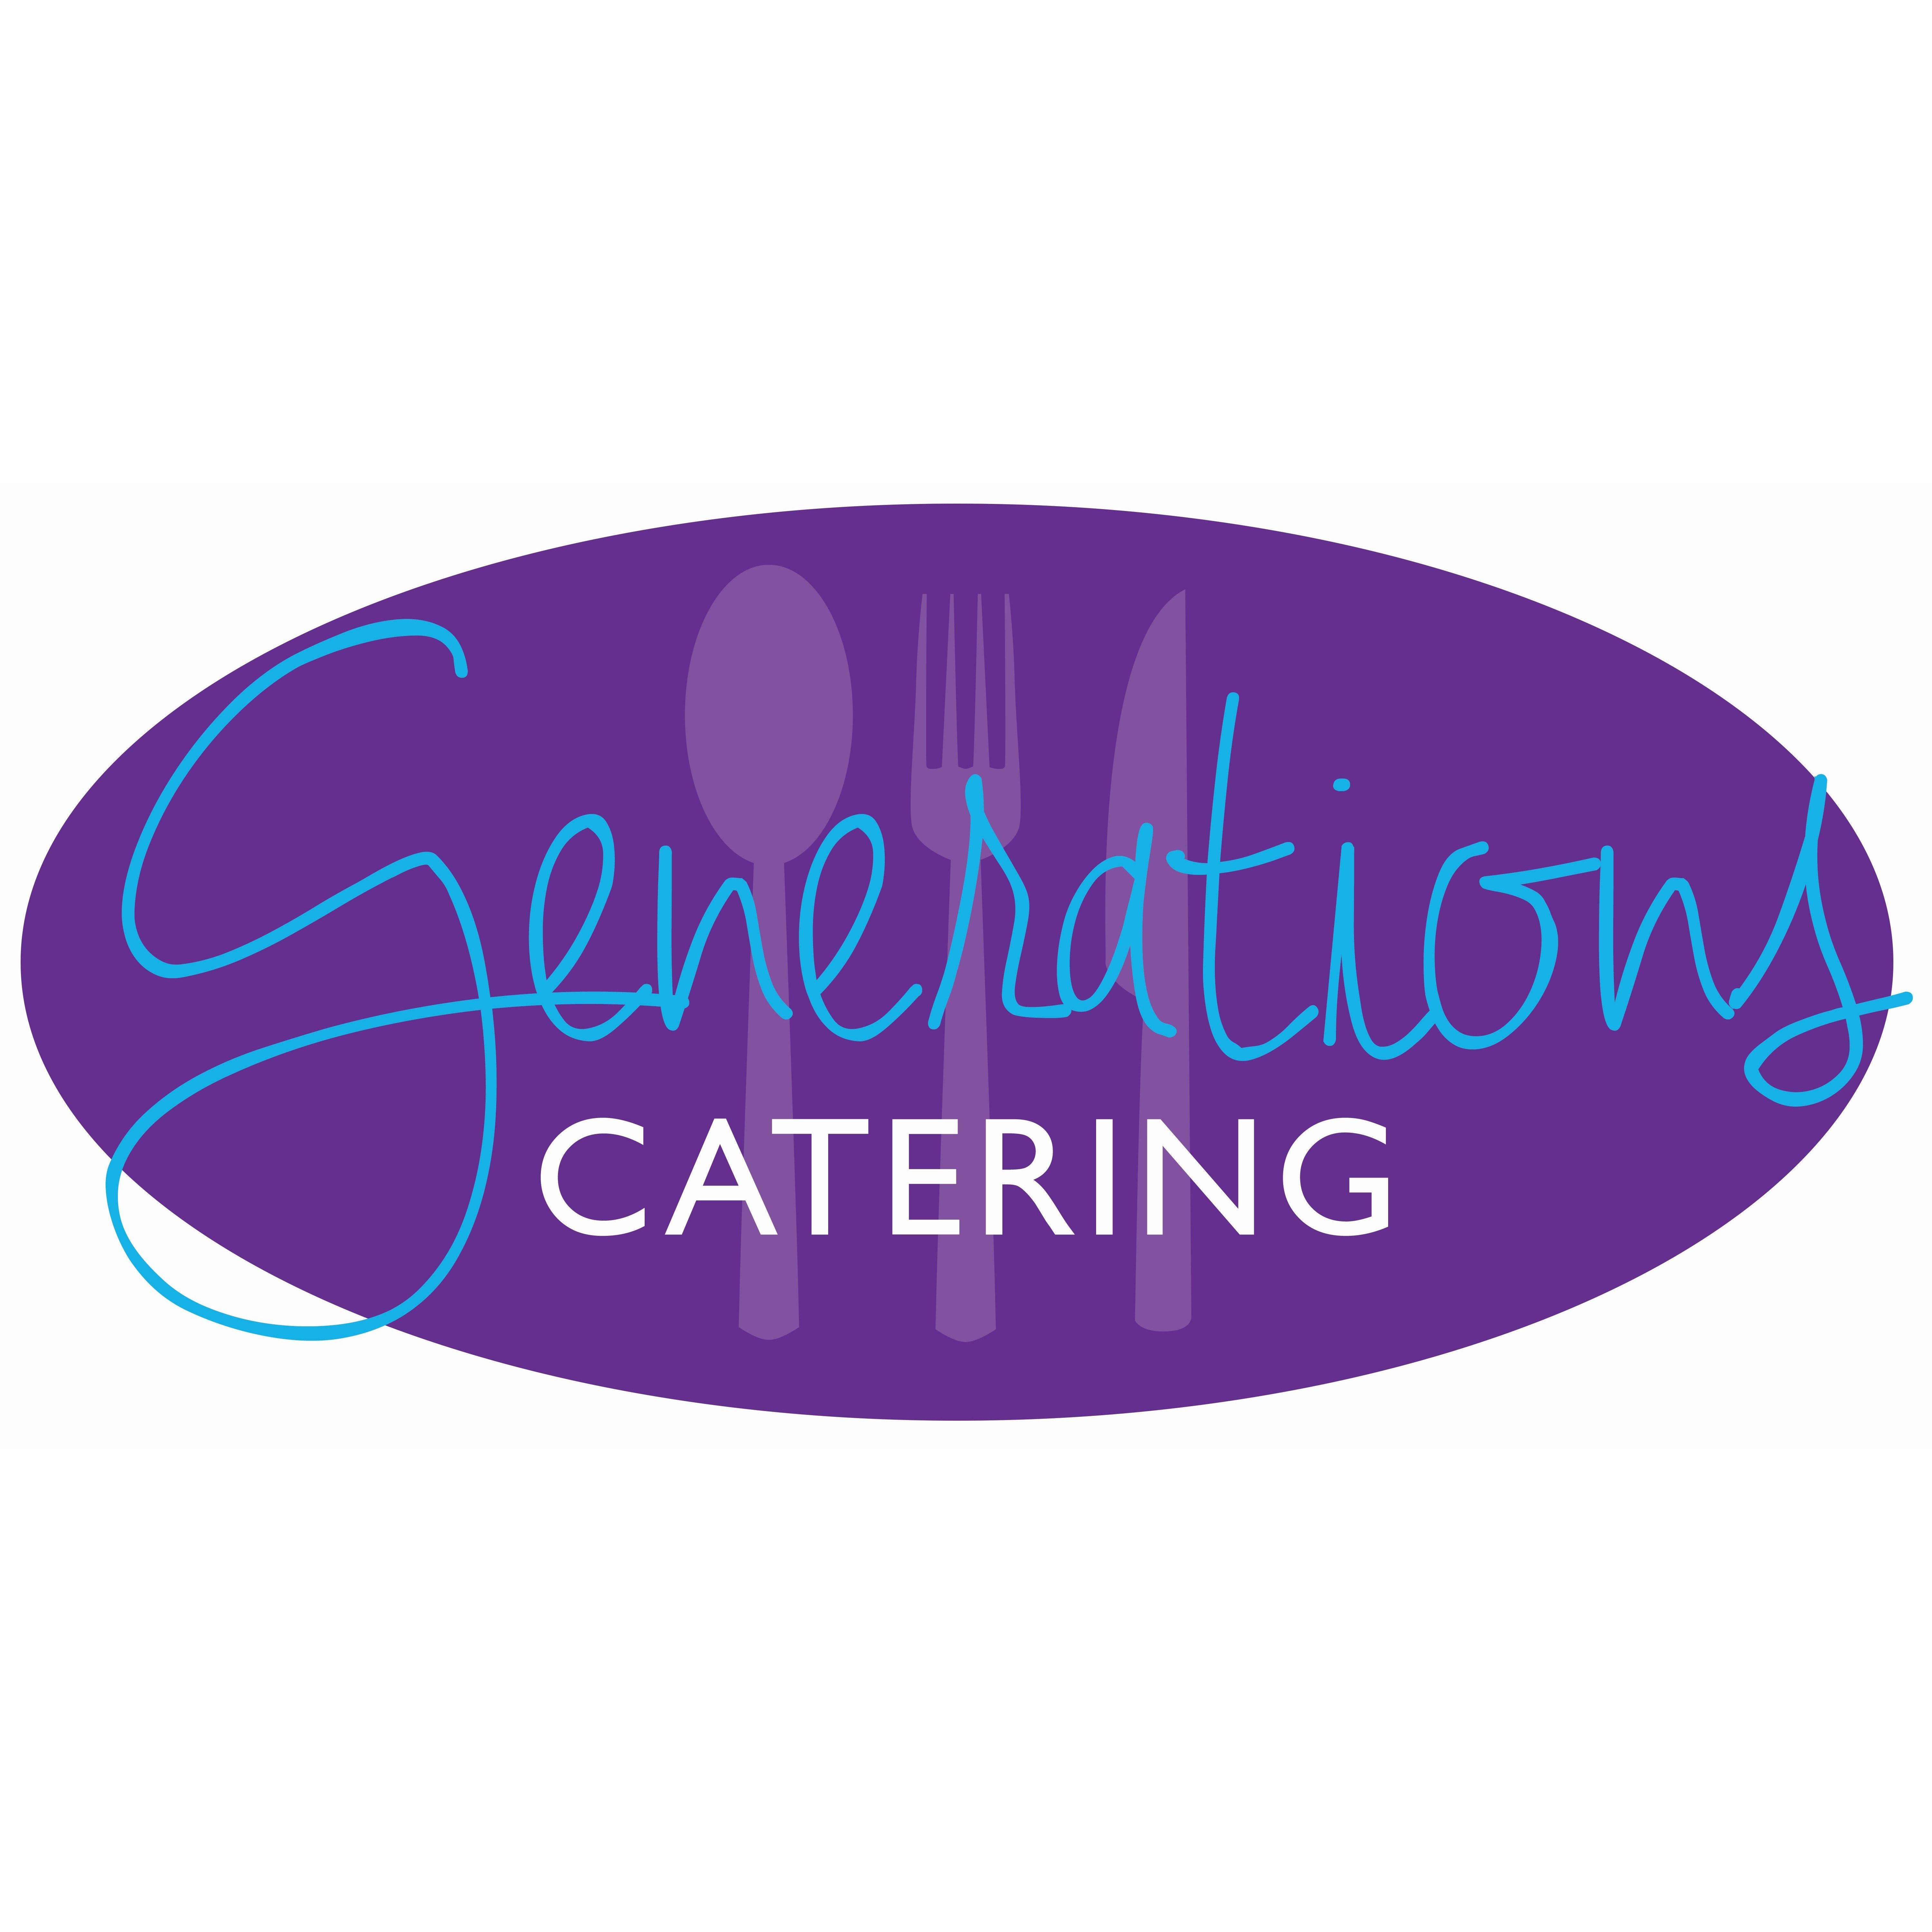 Generations Catering image 12